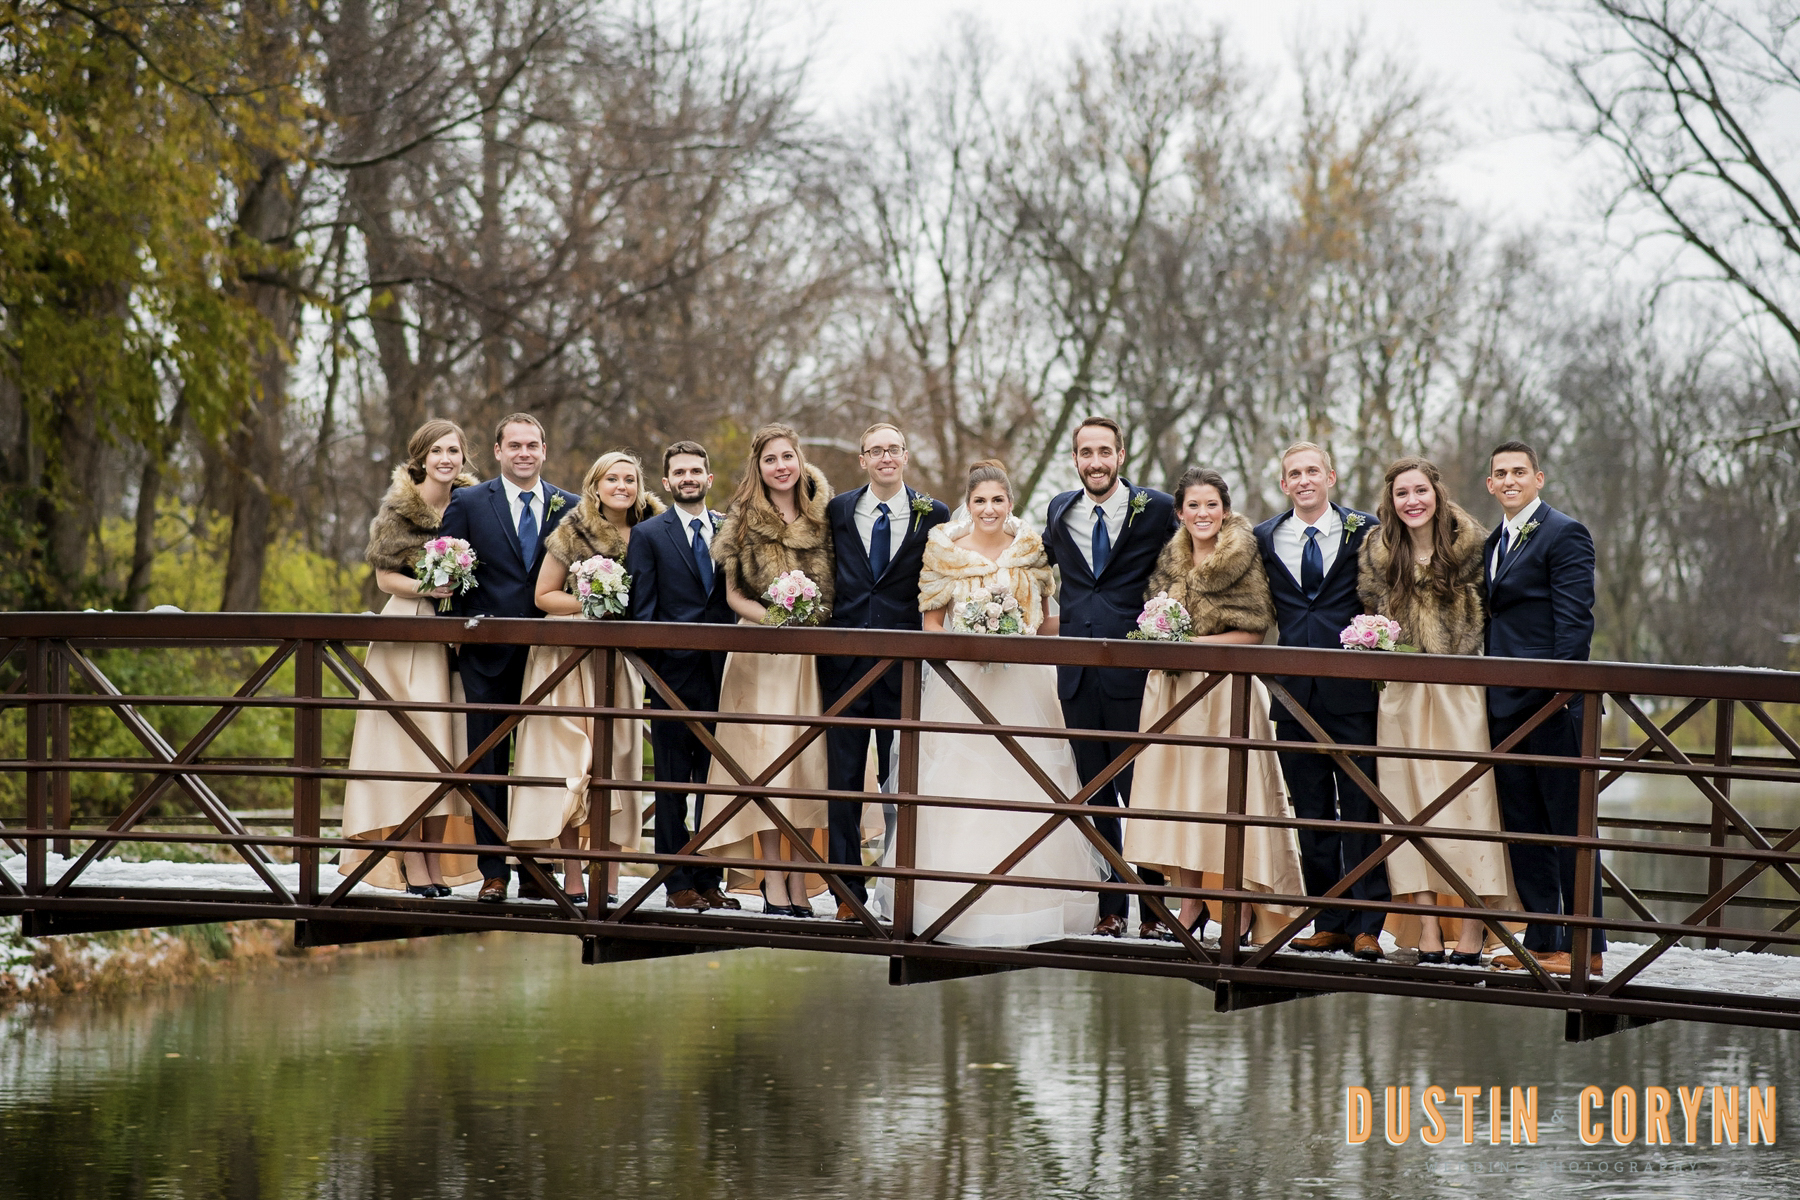 Indianapolis Photography - Dustin & Corynn Photography